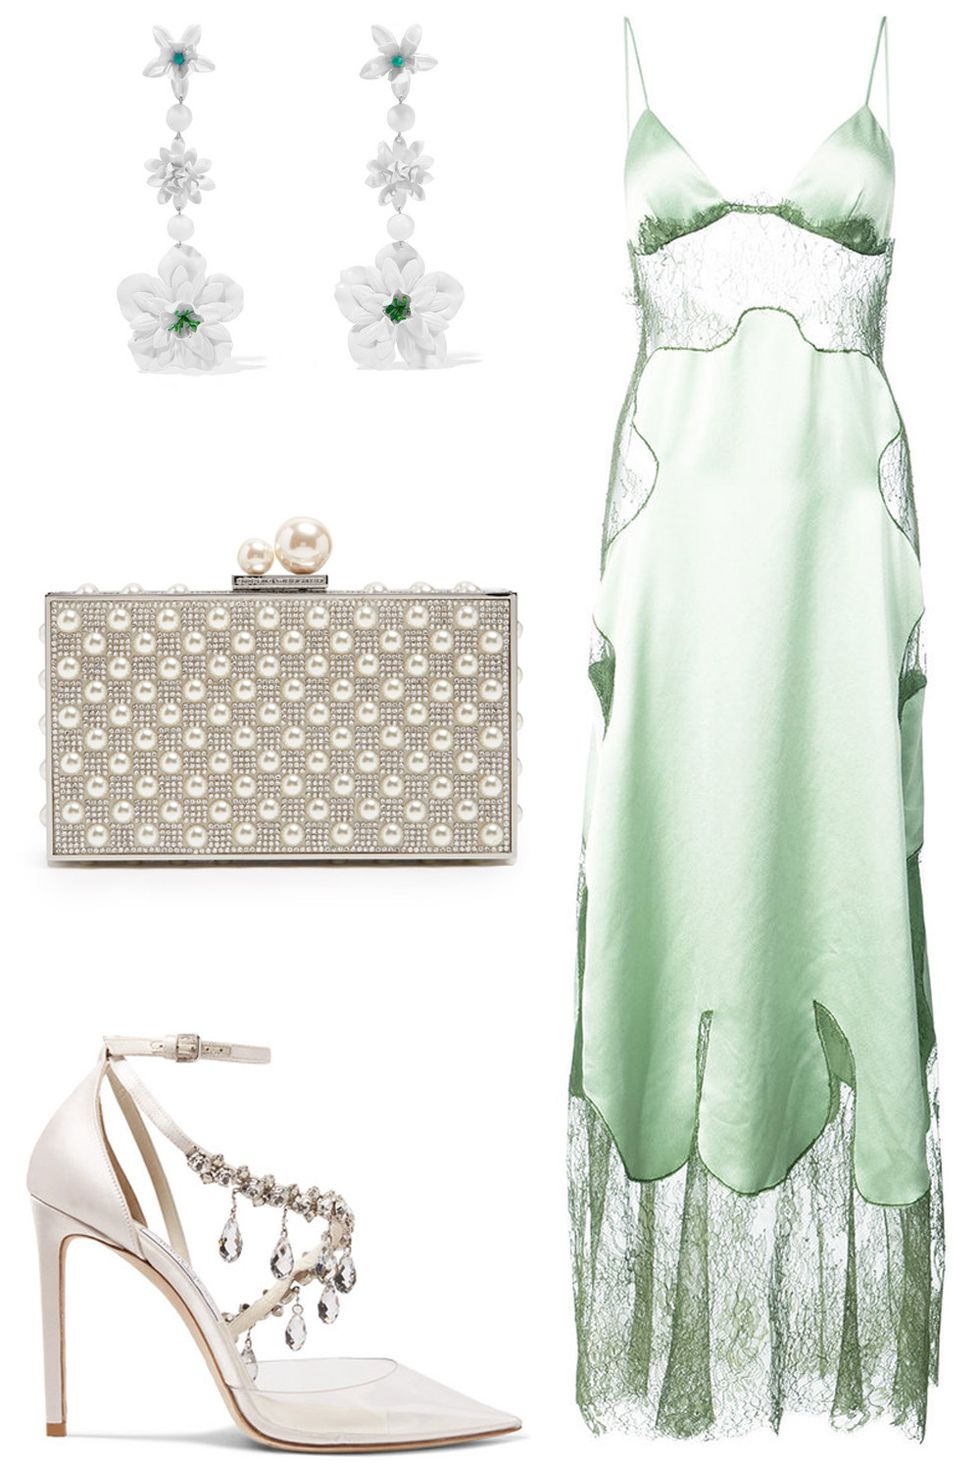 what-to-wear-for-a-summer-wedding-guest-outfit-green-light-dress-slip-white-shoe-pumps-earrings-maxi-dinner.jpg